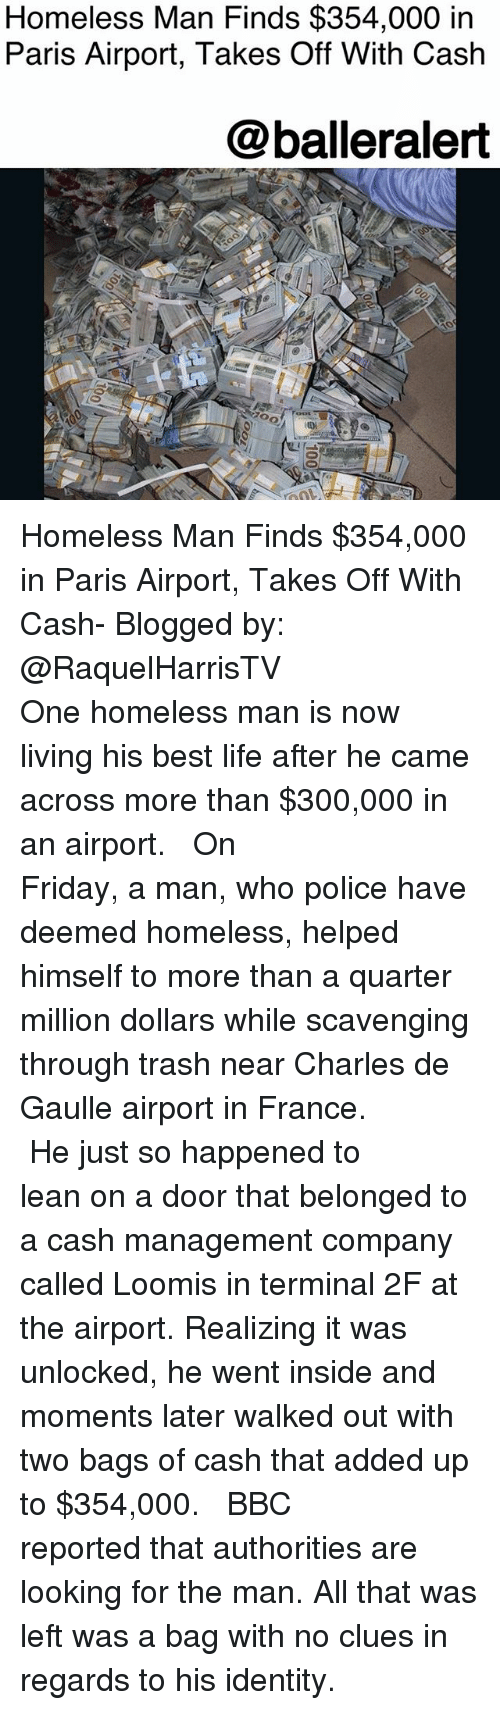 Friday, Homeless, and Lean: Homeless Man Finds $354,000 in  Paris Airport, Takes Off With Cash  @balleralert Homeless Man Finds $354,000 in Paris Airport, Takes Off With Cash- Blogged by: @RaquelHarrisTV ⠀⠀⠀⠀⠀⠀⠀⠀⠀ ⠀⠀⠀⠀⠀⠀⠀⠀⠀ One homeless man is now living his best life after he came across more than $300,000 in an airport. ⠀⠀⠀⠀⠀⠀⠀⠀⠀ ⠀⠀⠀⠀⠀⠀⠀⠀⠀ On Friday, a man, who police have deemed homeless, helped himself to more than a quarter million dollars while scavenging through trash near Charles de Gaulle airport in France. ⠀⠀⠀⠀⠀⠀⠀⠀⠀ ⠀⠀⠀⠀⠀⠀⠀⠀⠀ He just so happened to lean on a door that belonged to a cash management company called Loomis in terminal 2F at the airport. Realizing it was unlocked, he went inside and moments later walked out with two bags of cash that added up to $354,000. ⠀⠀⠀⠀⠀⠀⠀⠀⠀ ⠀⠀⠀⠀⠀⠀⠀⠀⠀ BBC reported that authorities are looking for the man. All that was left was a bag with no clues in regards to his identity.